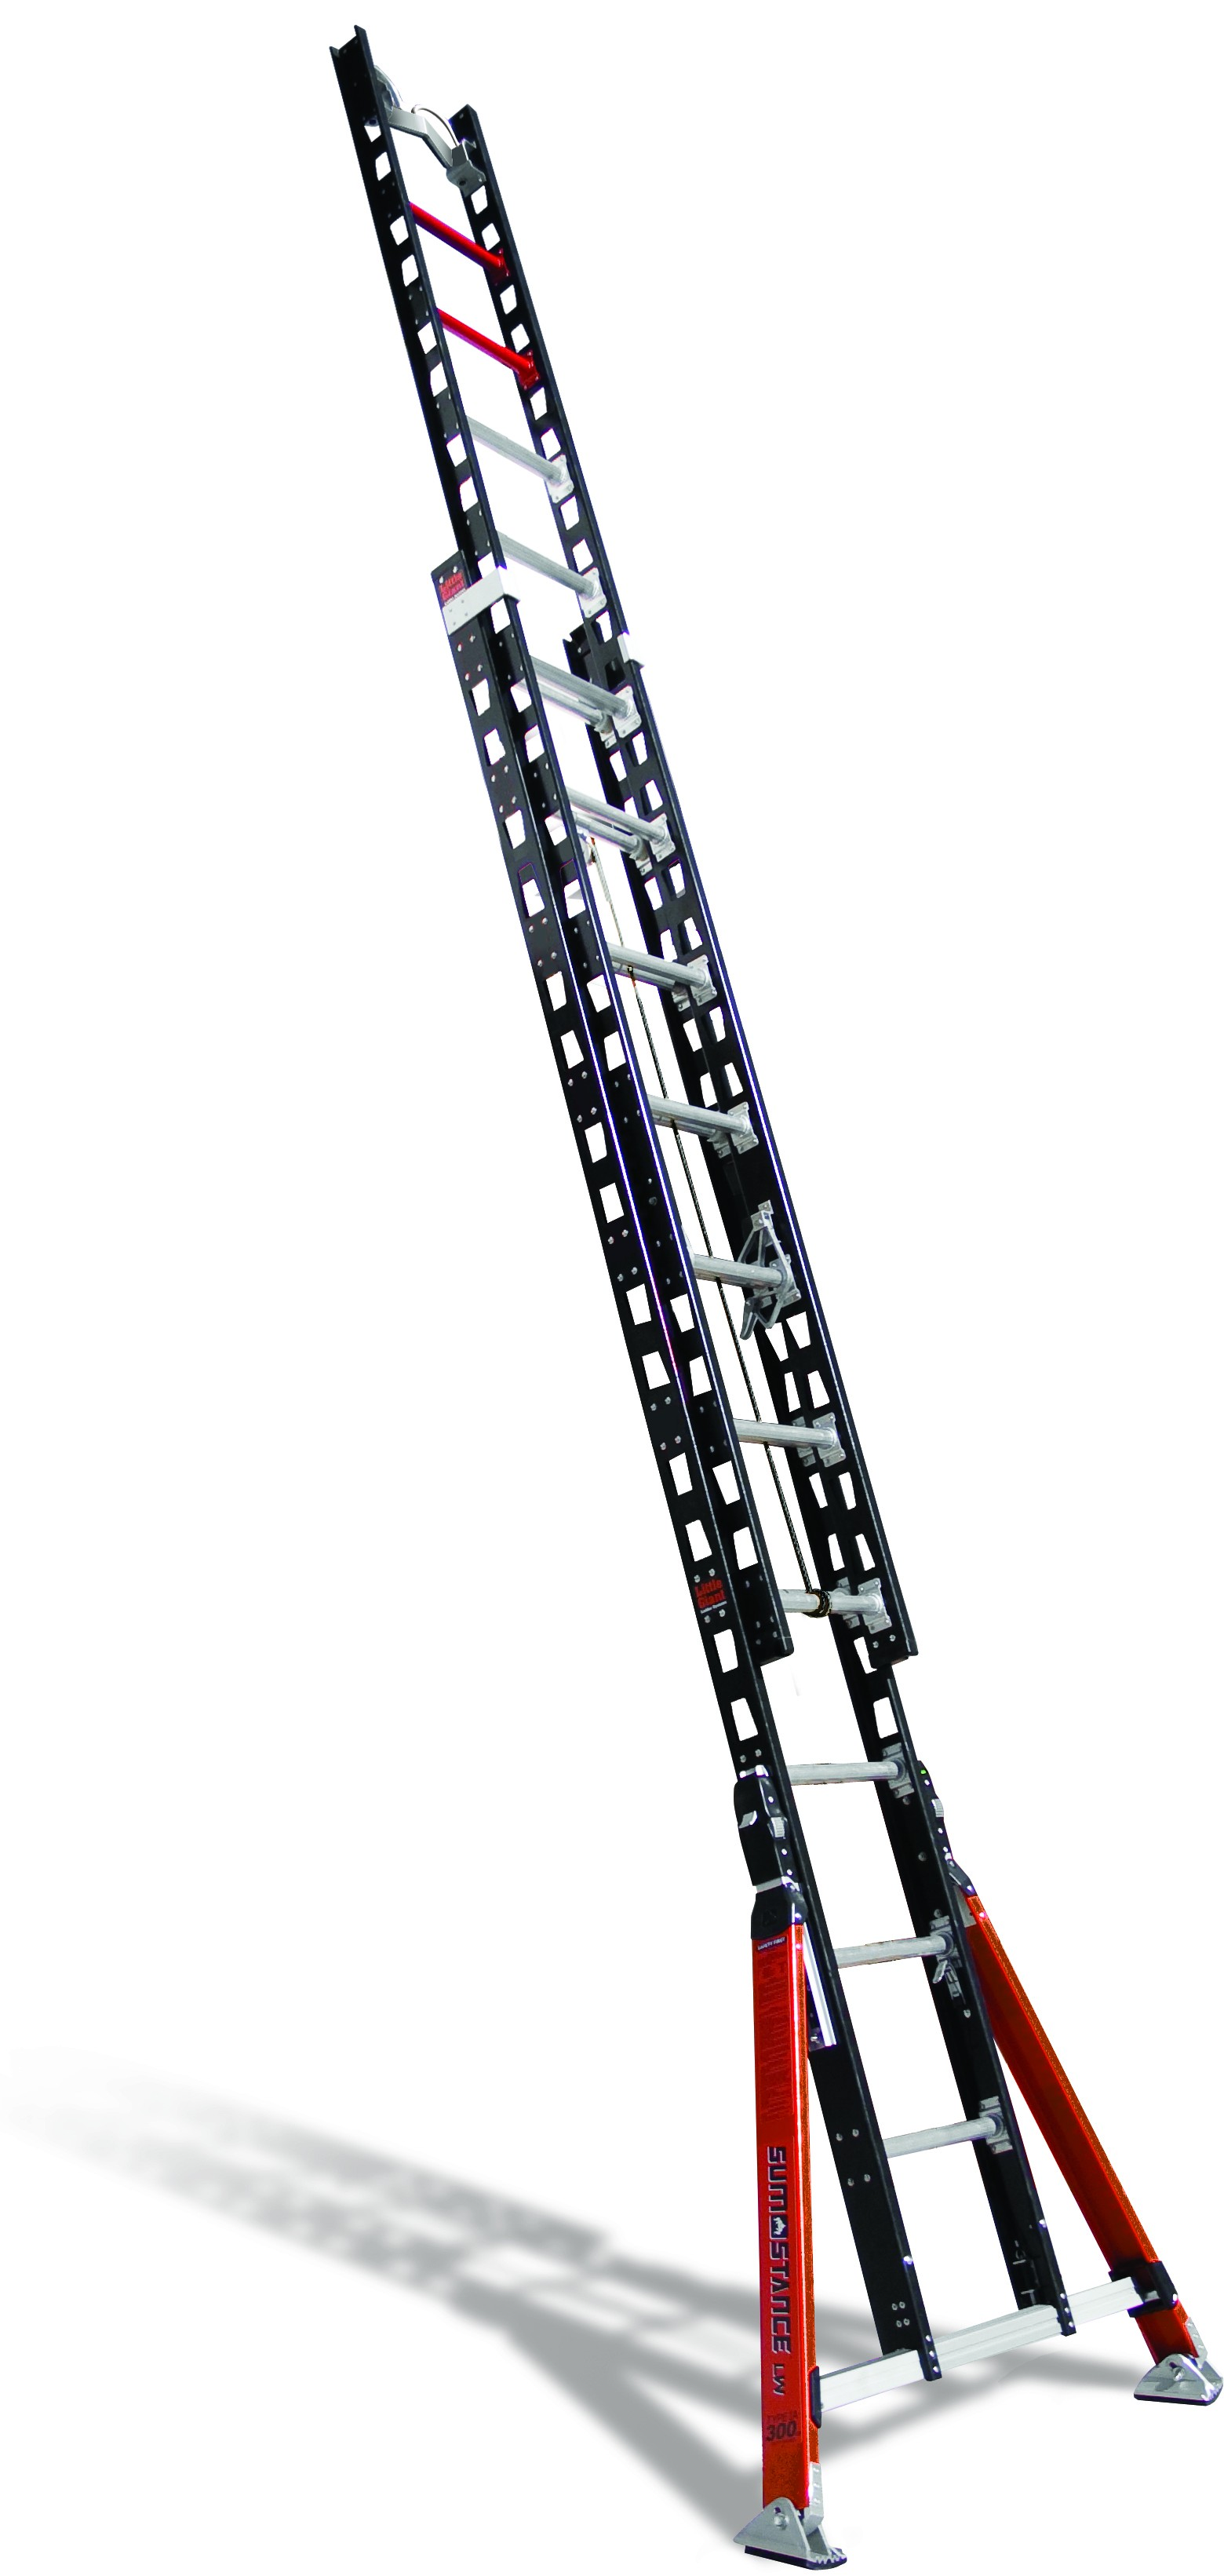 Calico Ladders Little Giant Ladders Sumostance 24ft F G